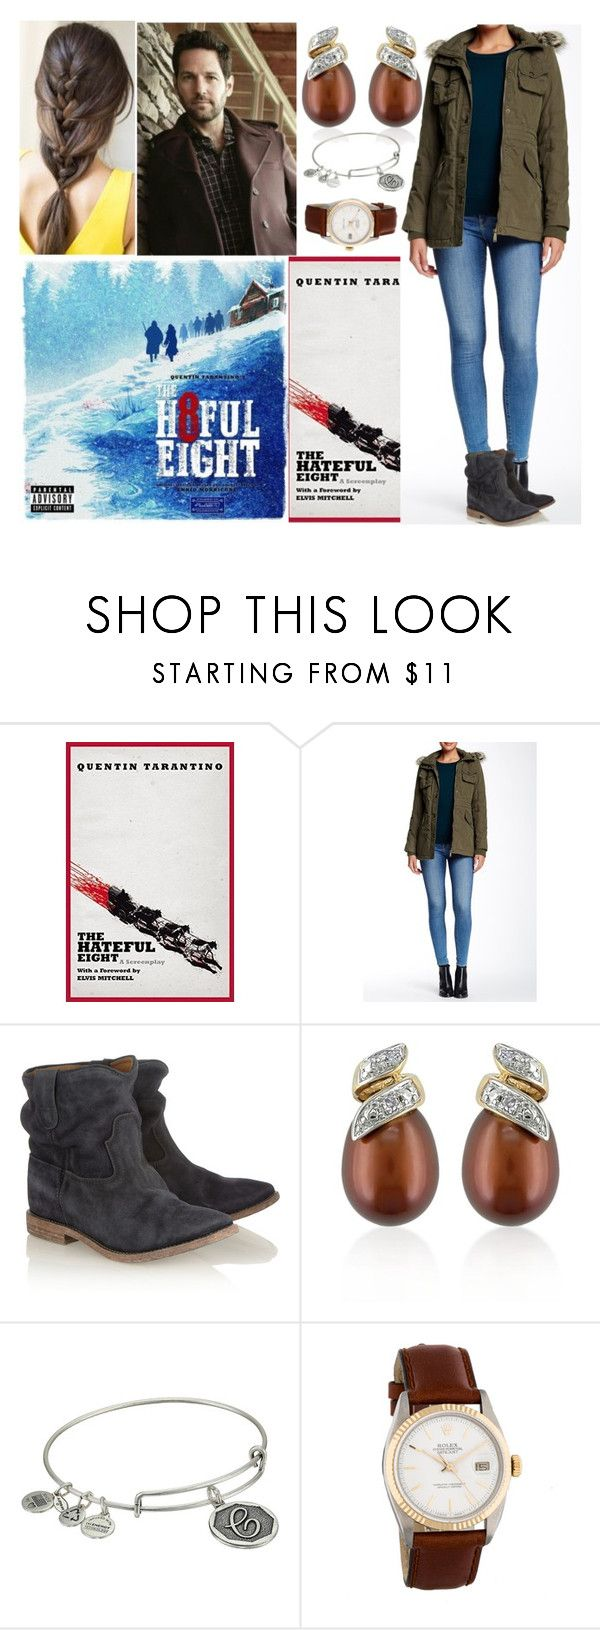 """""""Going to cinema with Paul and watching """"The Hateful Eight"""" by Quentin Tarantino"""" by deborawinter ❤ liked on Polyvore featuring BCBGMAXAZRIA, Isabel Marant, Belk & Co., Alex and Ani, Rolex, women's clothing, women, female, woman and misses"""